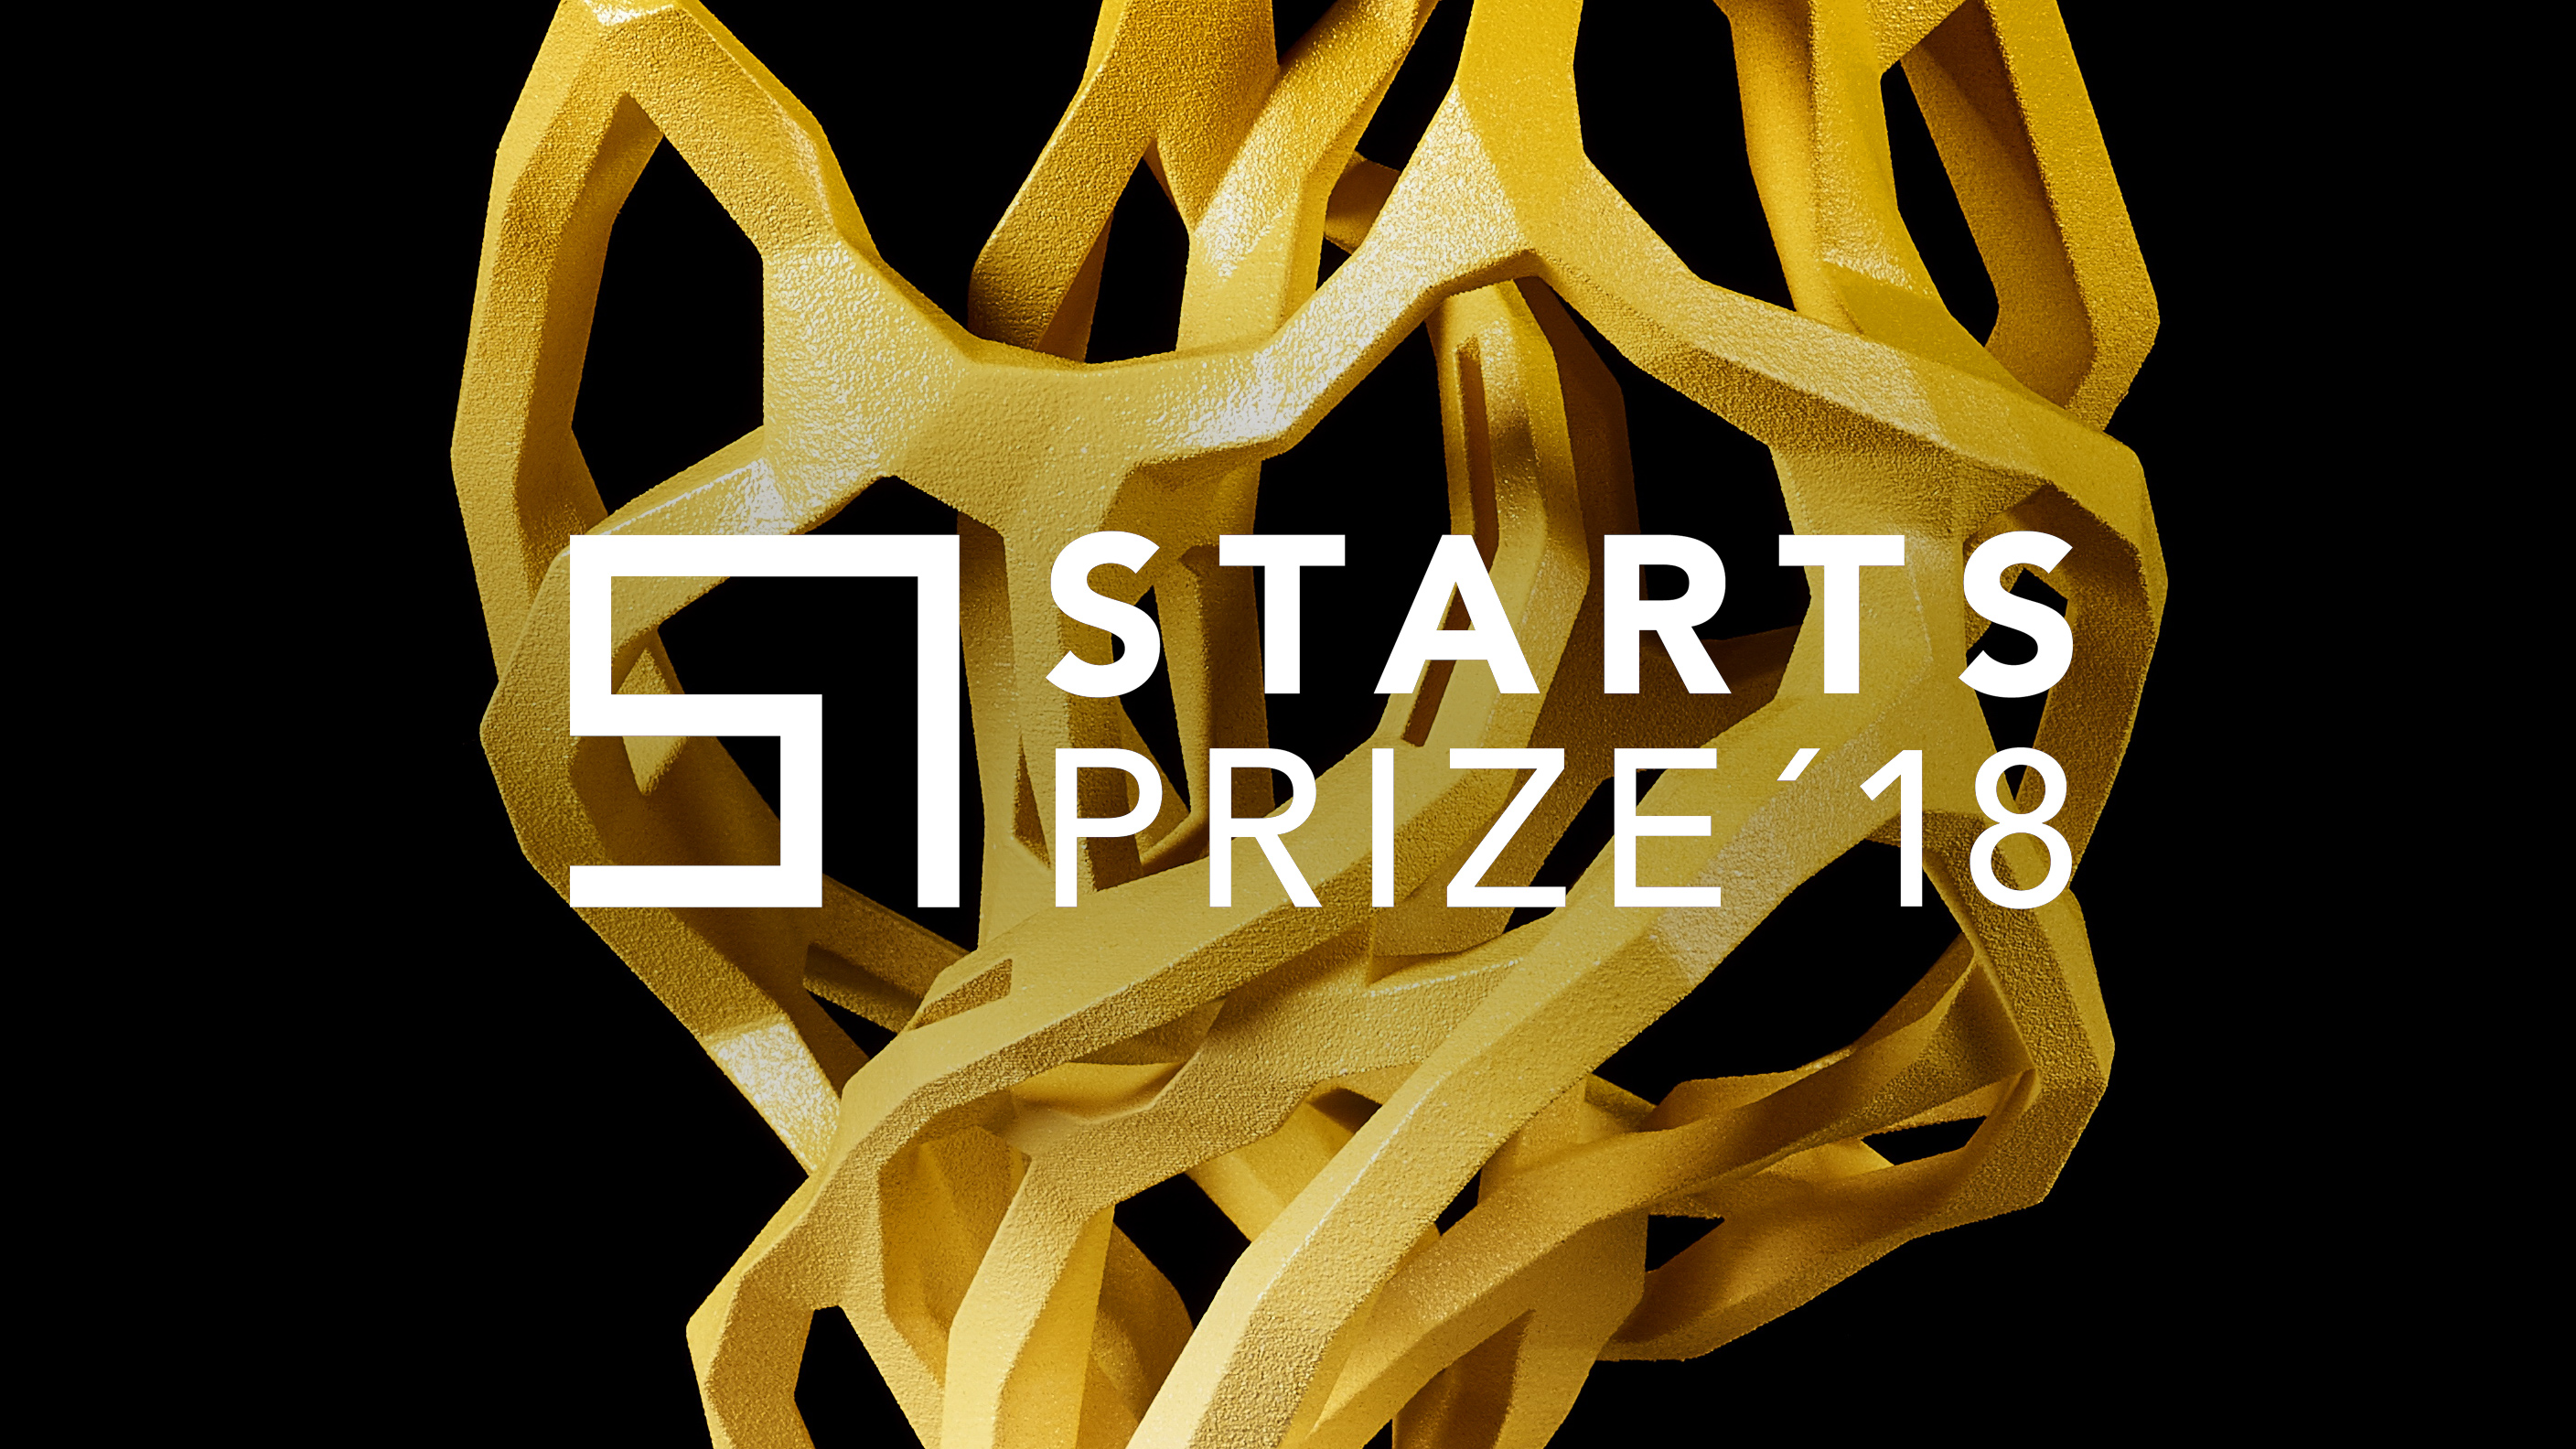 call: STARTS Prize 2018